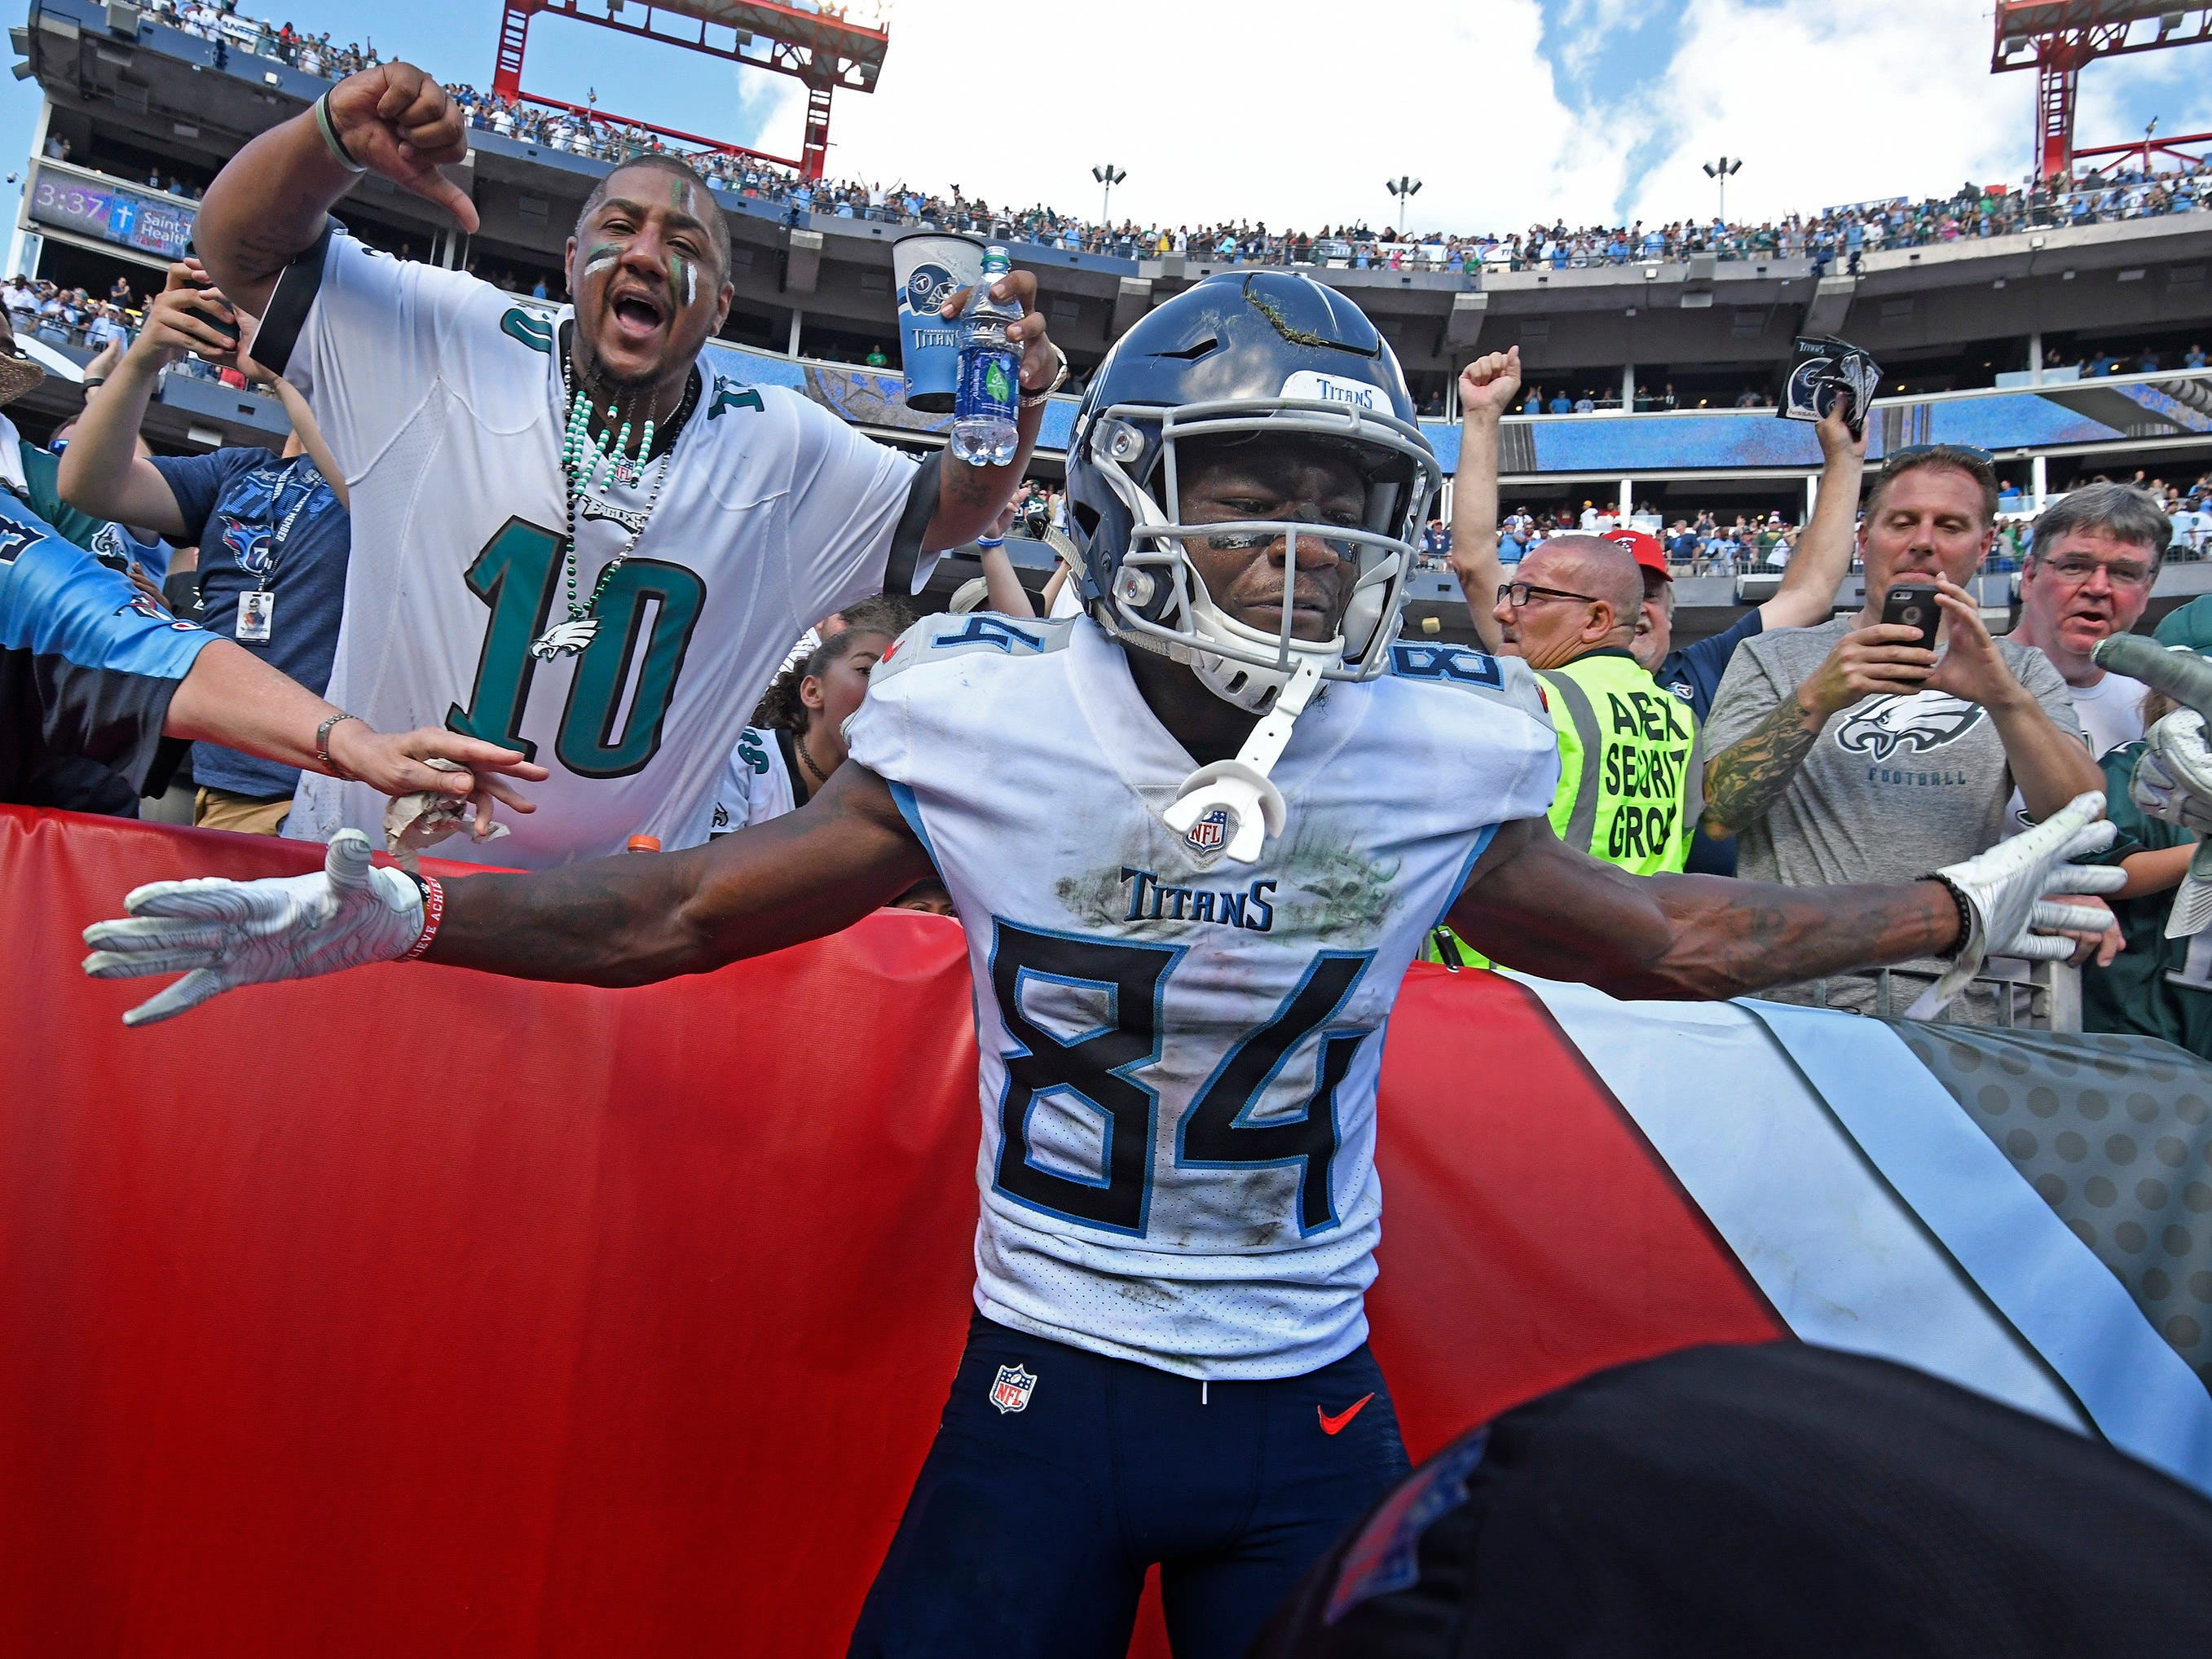 Sept. 30: TItans 26, Eagles 23 -- Titans wide receiver Corey Davis (84) celebrates his game-winning touchdown in overtime at Nissan Stadium Sunday, Sept. 30, 2018, in Nashville, Tenn.